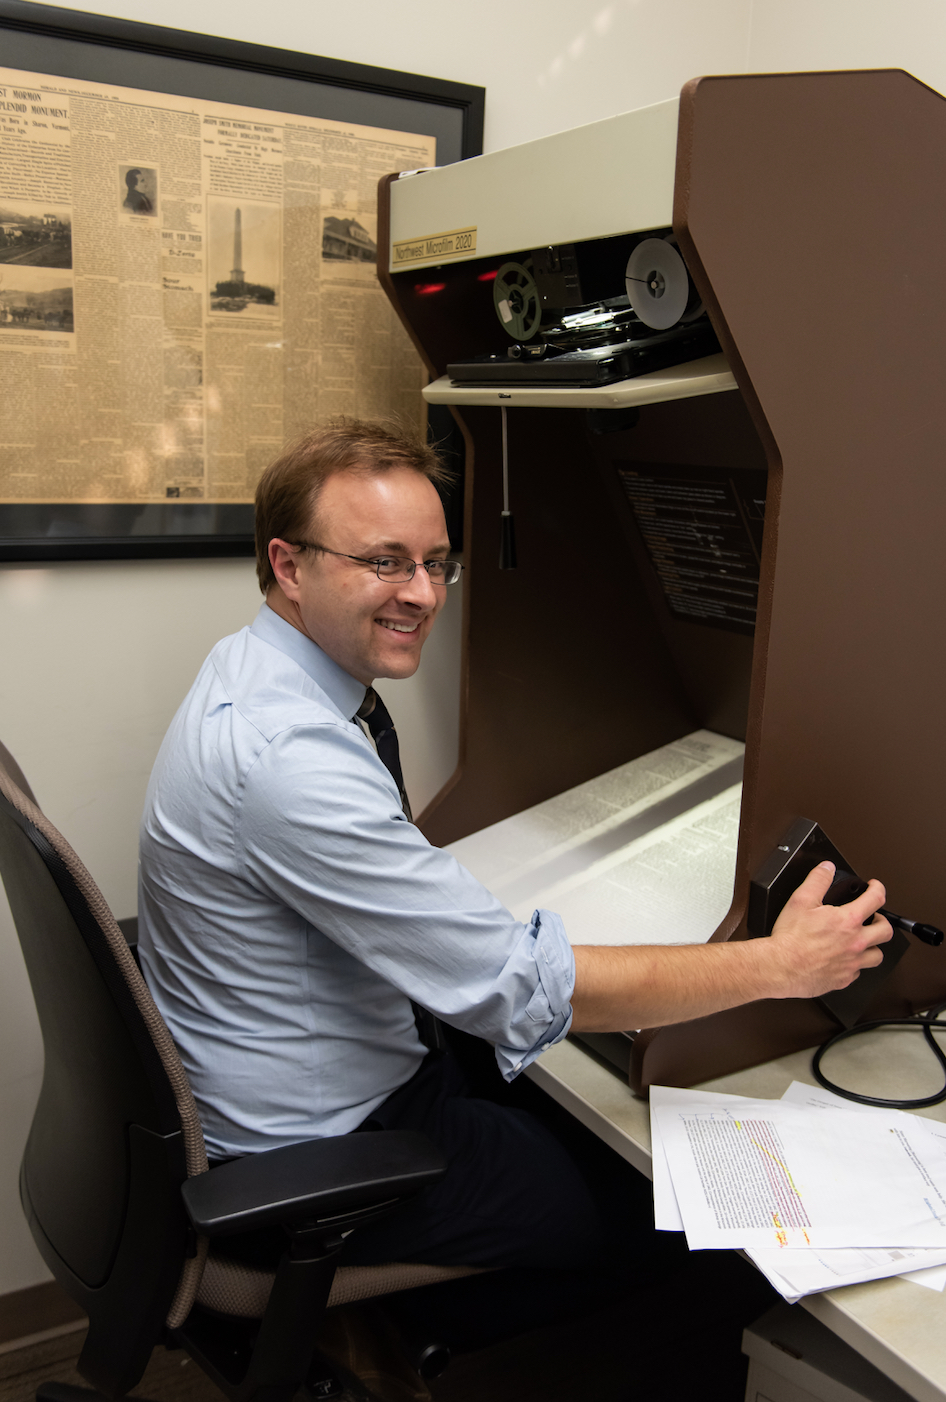 Historian J. Chase Kirkham uses the microfilm reader to research newspapers from the 1840s for a forthcoming volume of the Joseph Smith Papers.